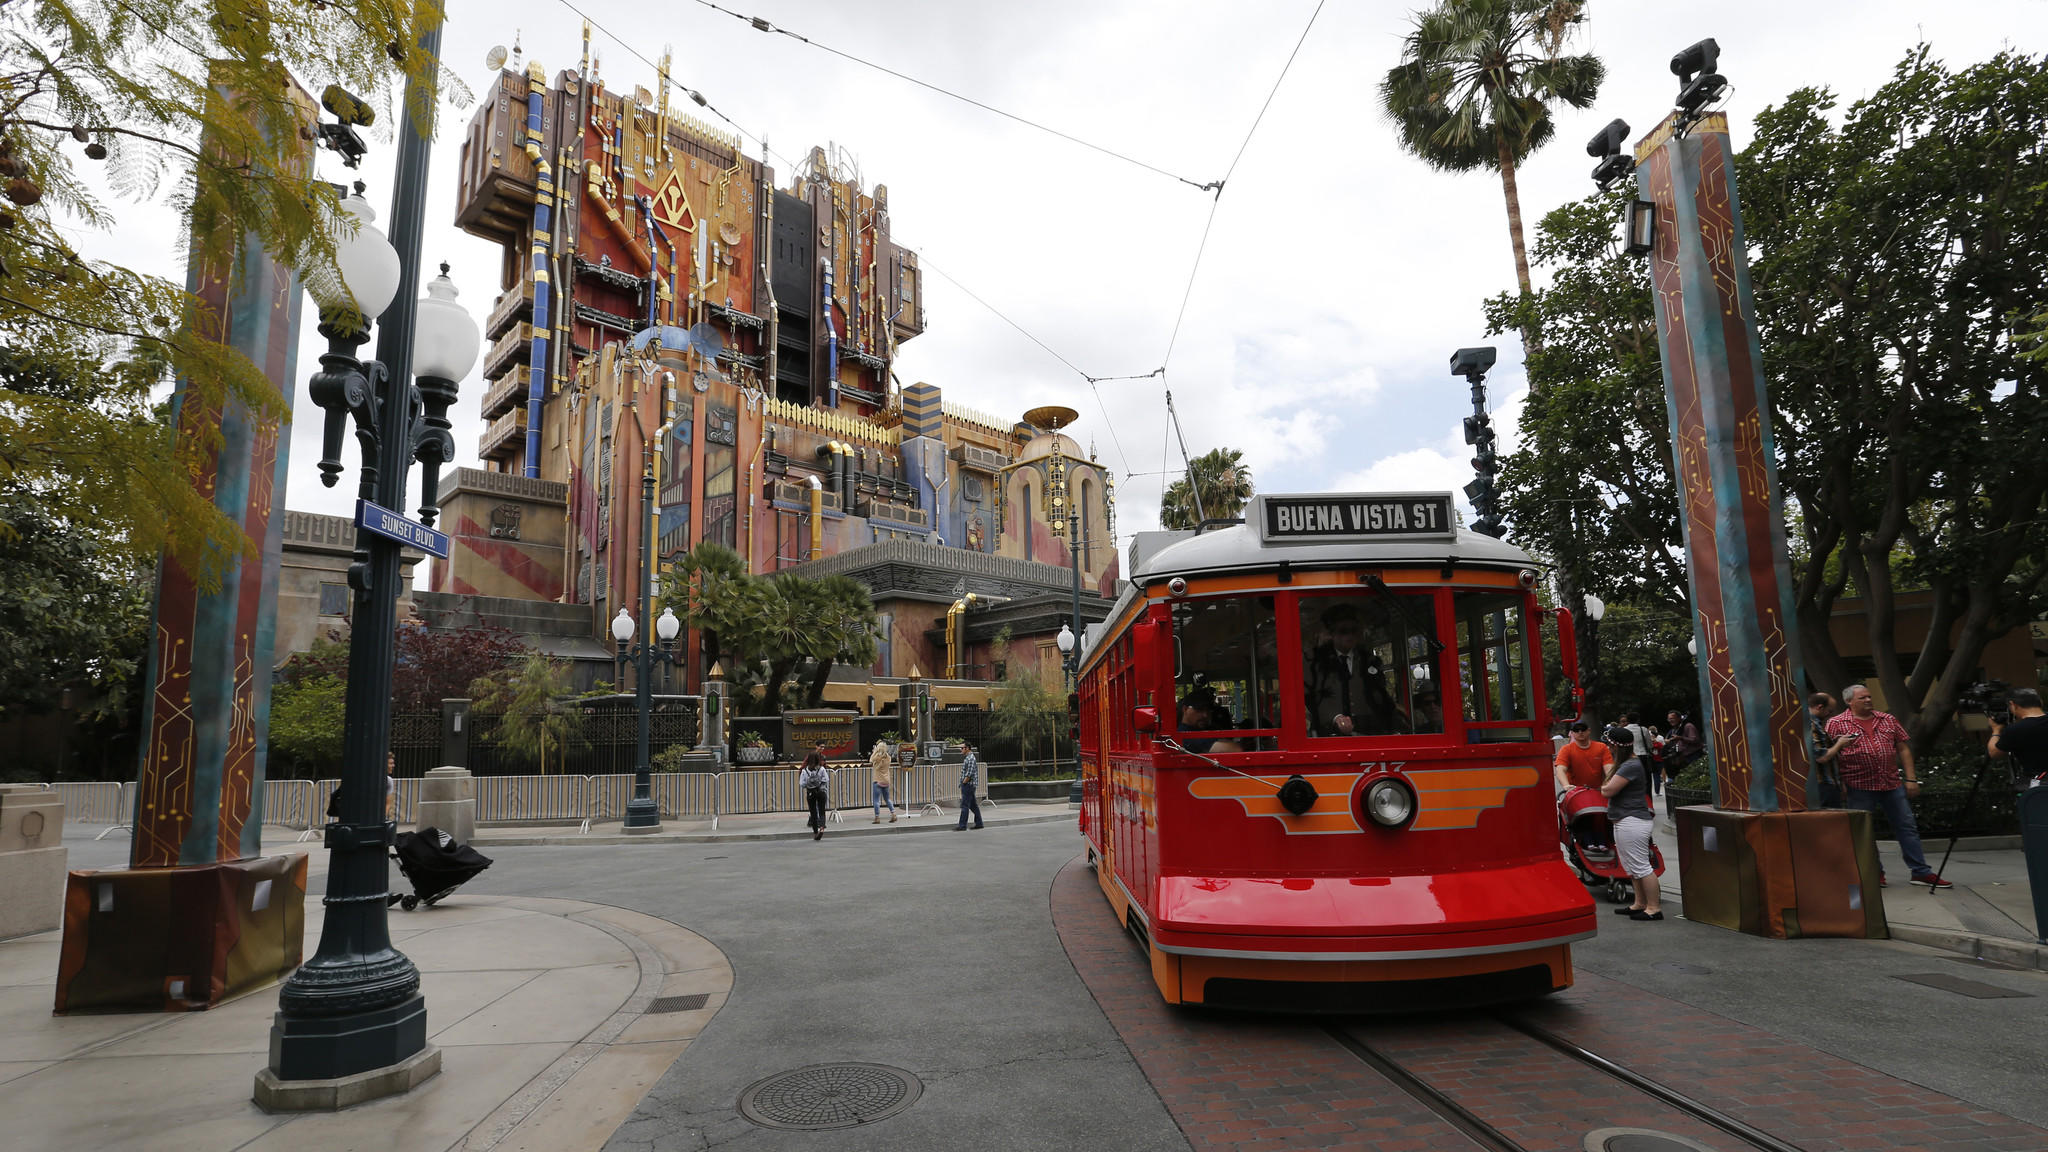 An exterior view of the Guardians of the Galaxy: Mission Breakout ride in Anaheim shortly before the crowds showed up for its May debut.